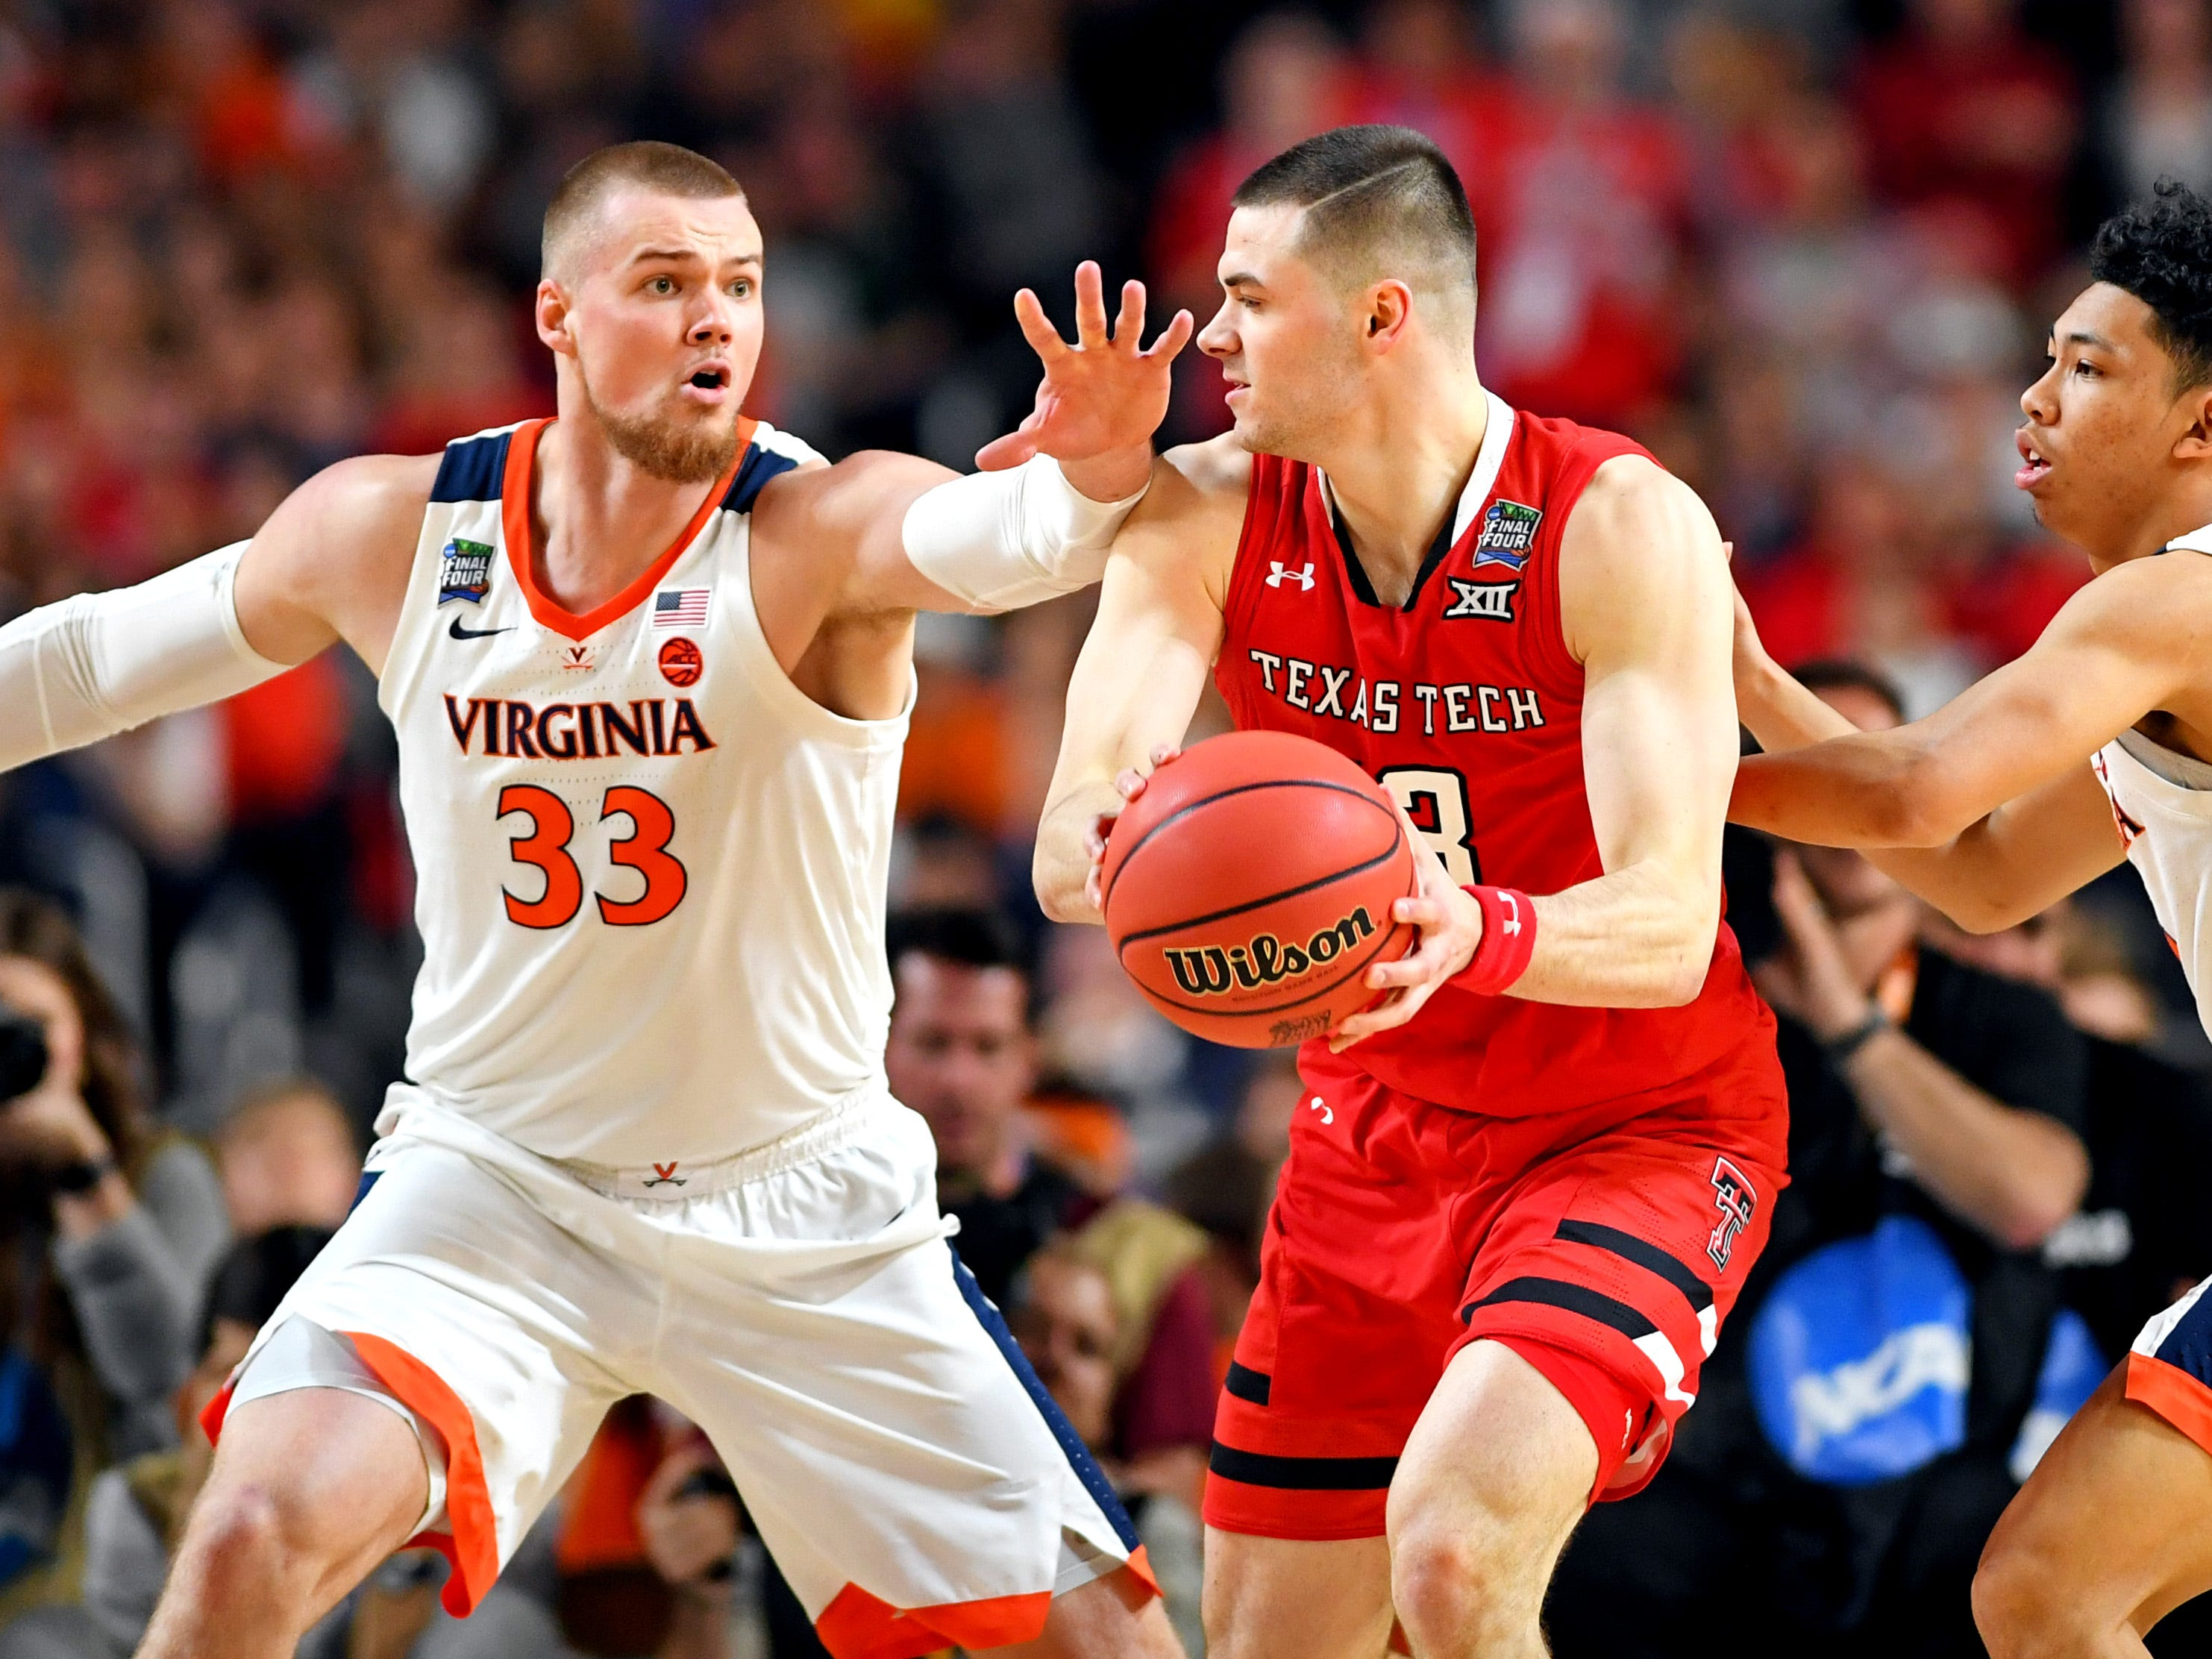 Apr 8, 2019; Minneapolis, MN, USA; Texas Tech Red Raiders guard Matt Mooney (13) handles the ball against Virginia Cavaliers center Jack Salt (33) and guard Kihei Clark (0) during the first half in the championship game of the 2019 men's Final Four at US Bank Stadium. Mandatory Credit: Bob Donnan-USA TODAY Sports